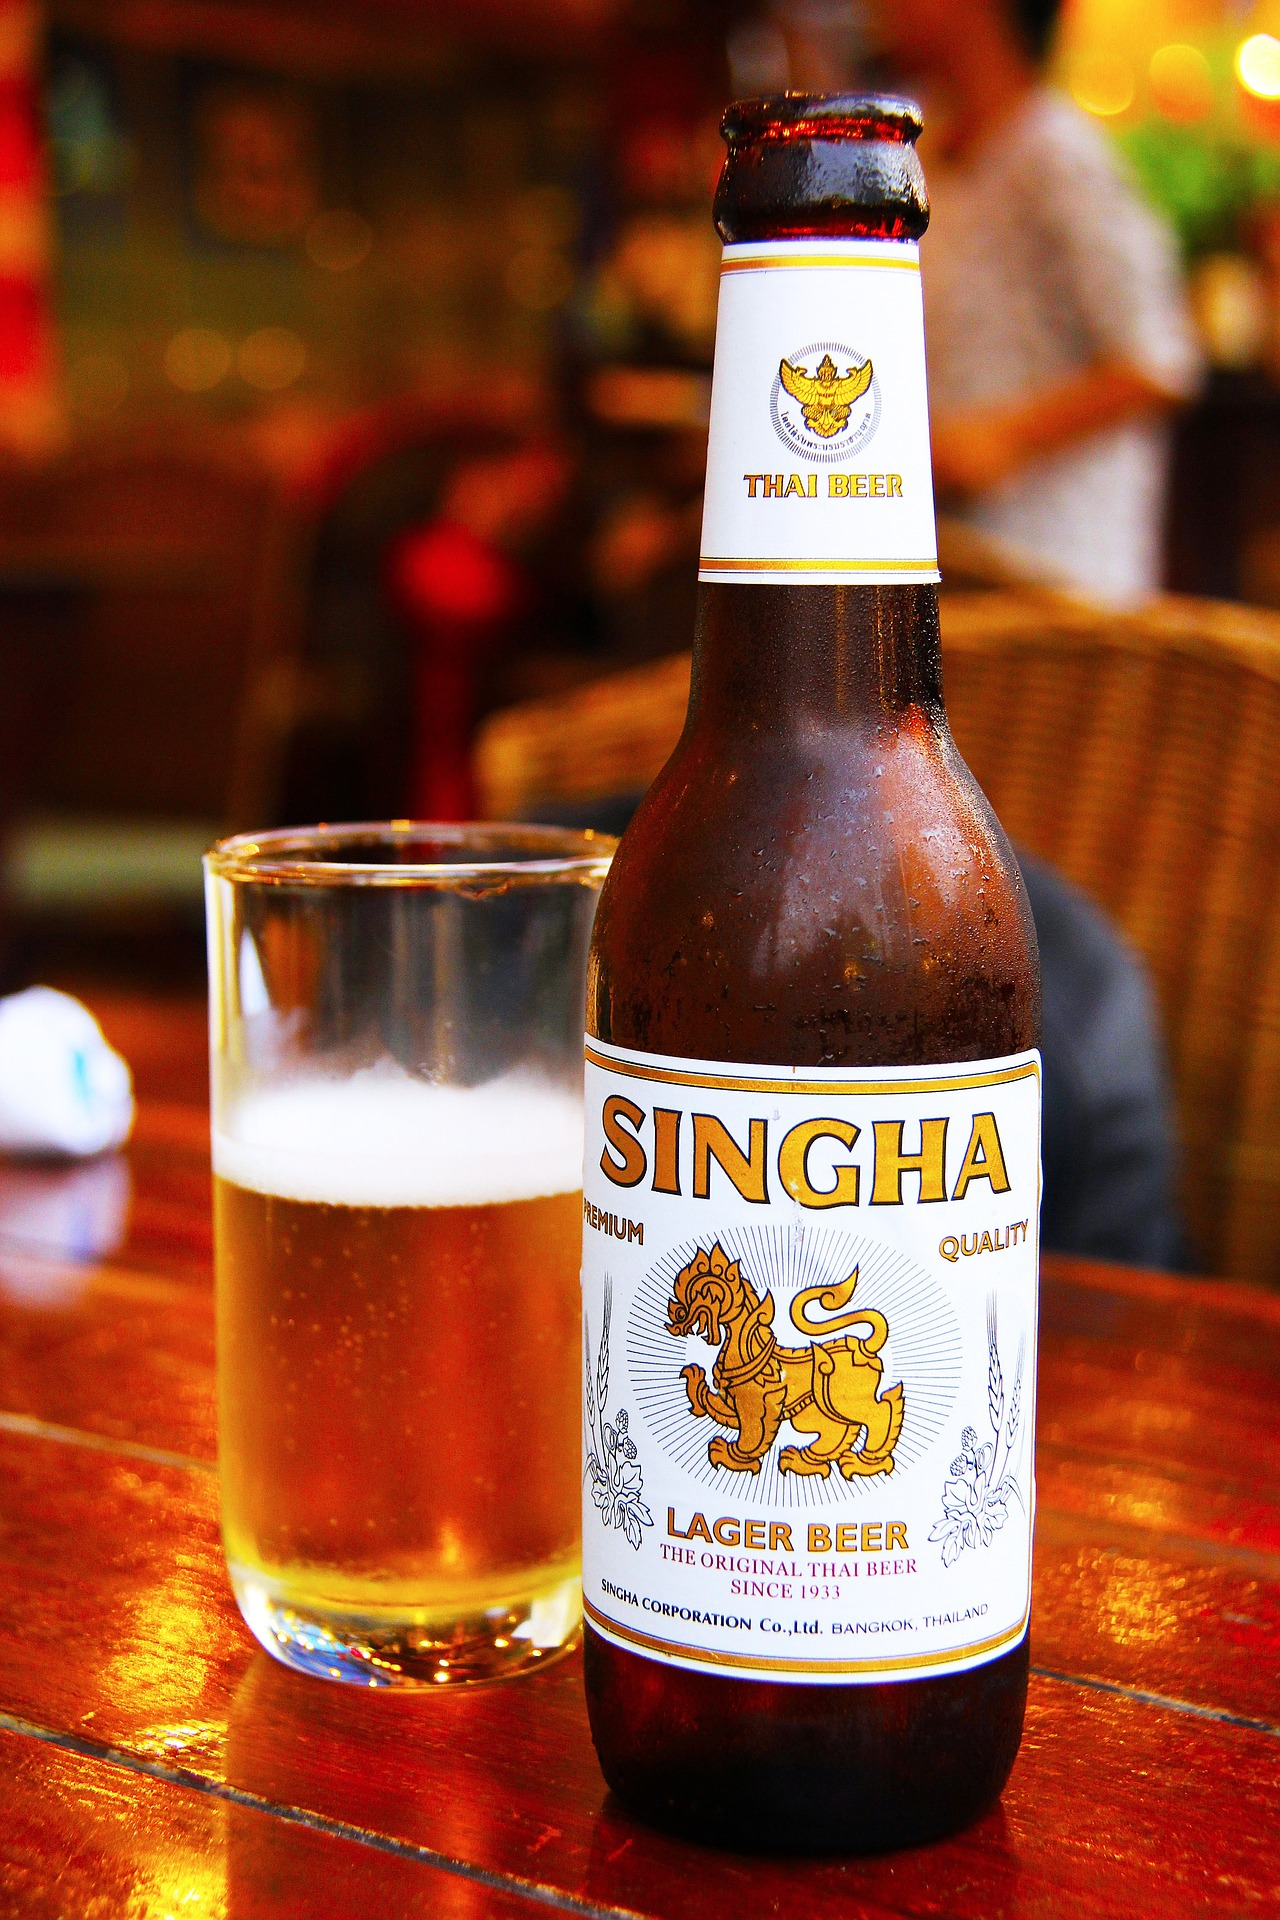 a bottle of Singha Beer in Thailand; alcohol can only be served during certain times of the day